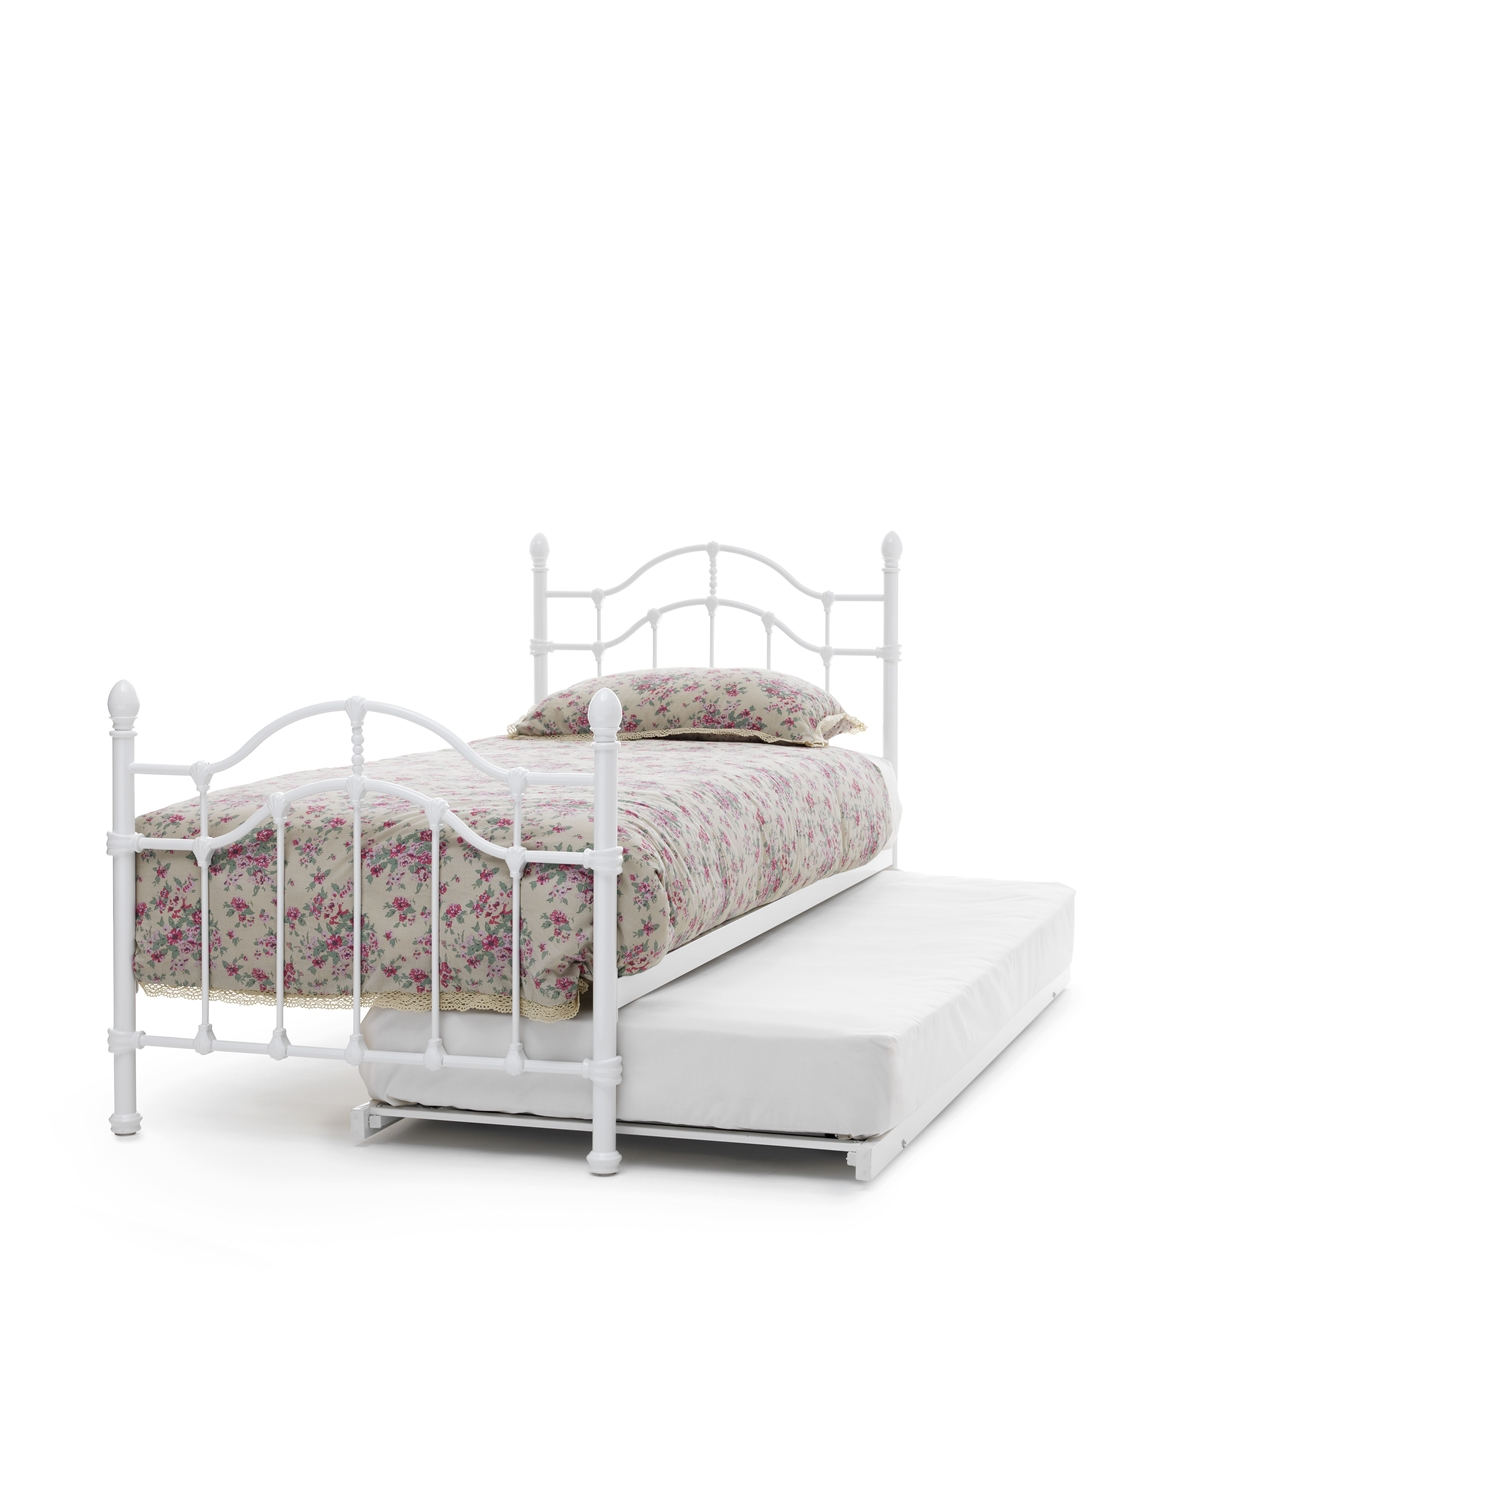 Image of Casa Paris Single Guest Bed